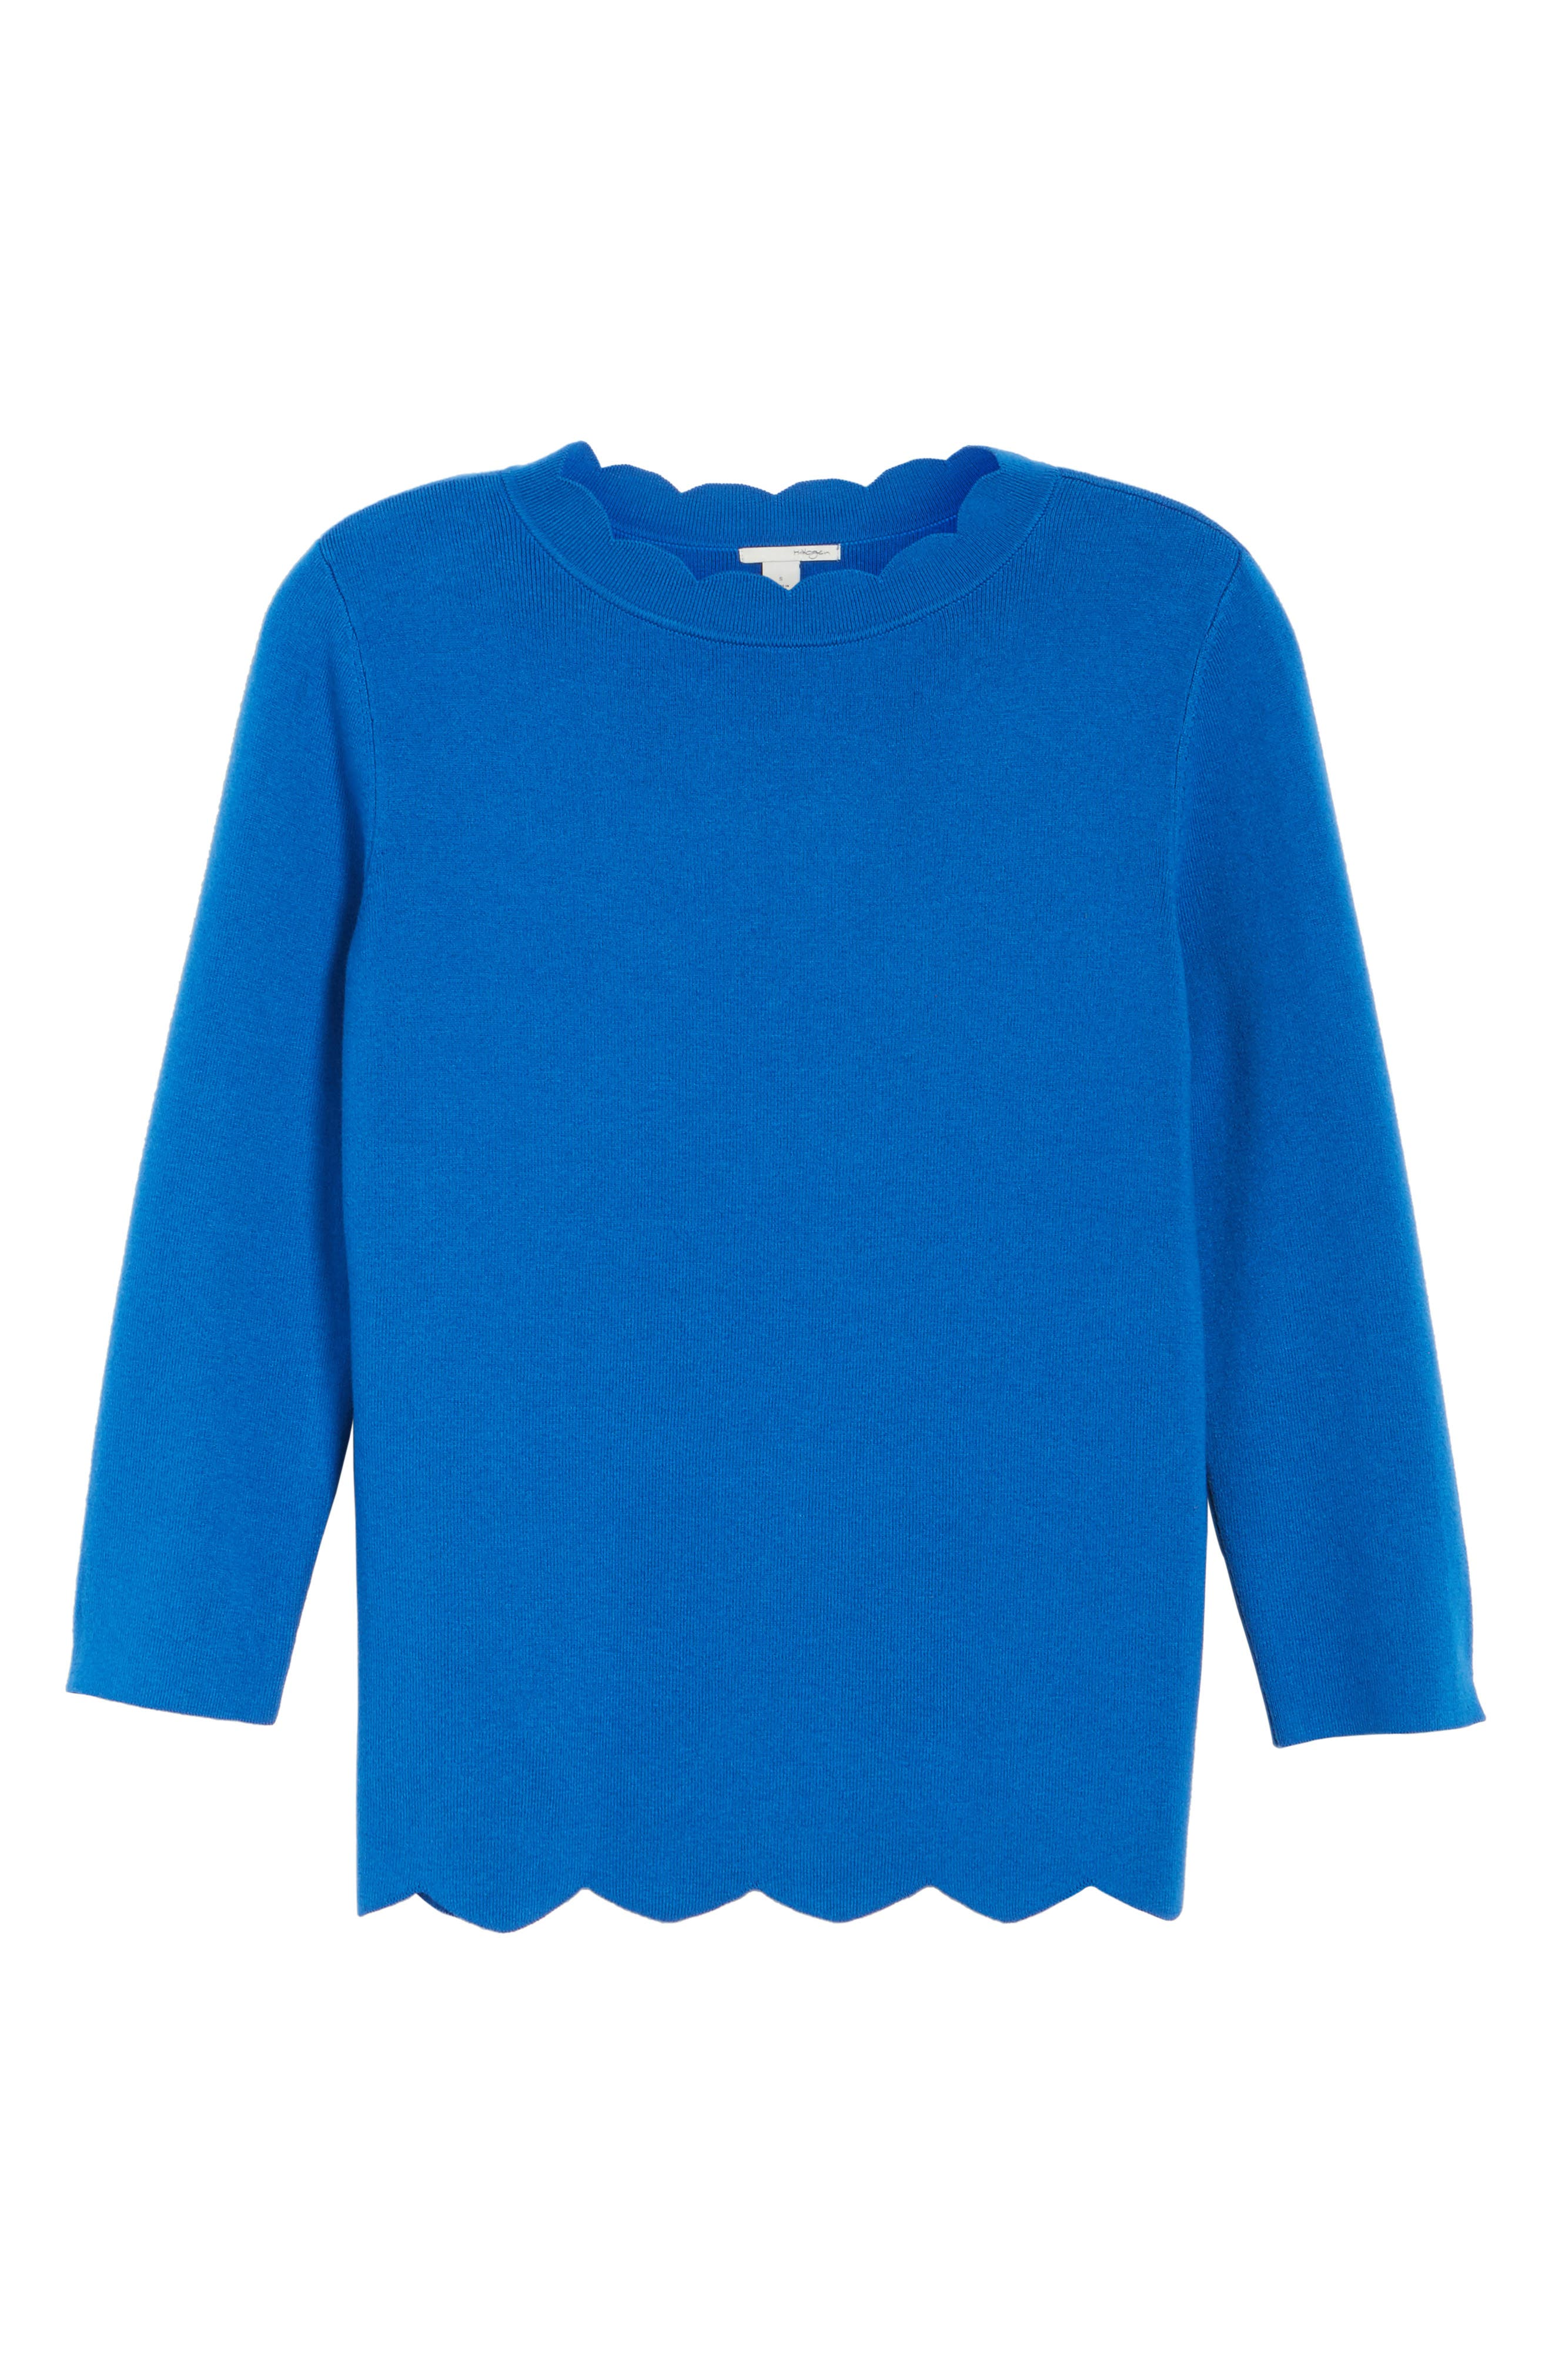 Halogen Scallop Edge Sweater,                             Alternate thumbnail 62, color,